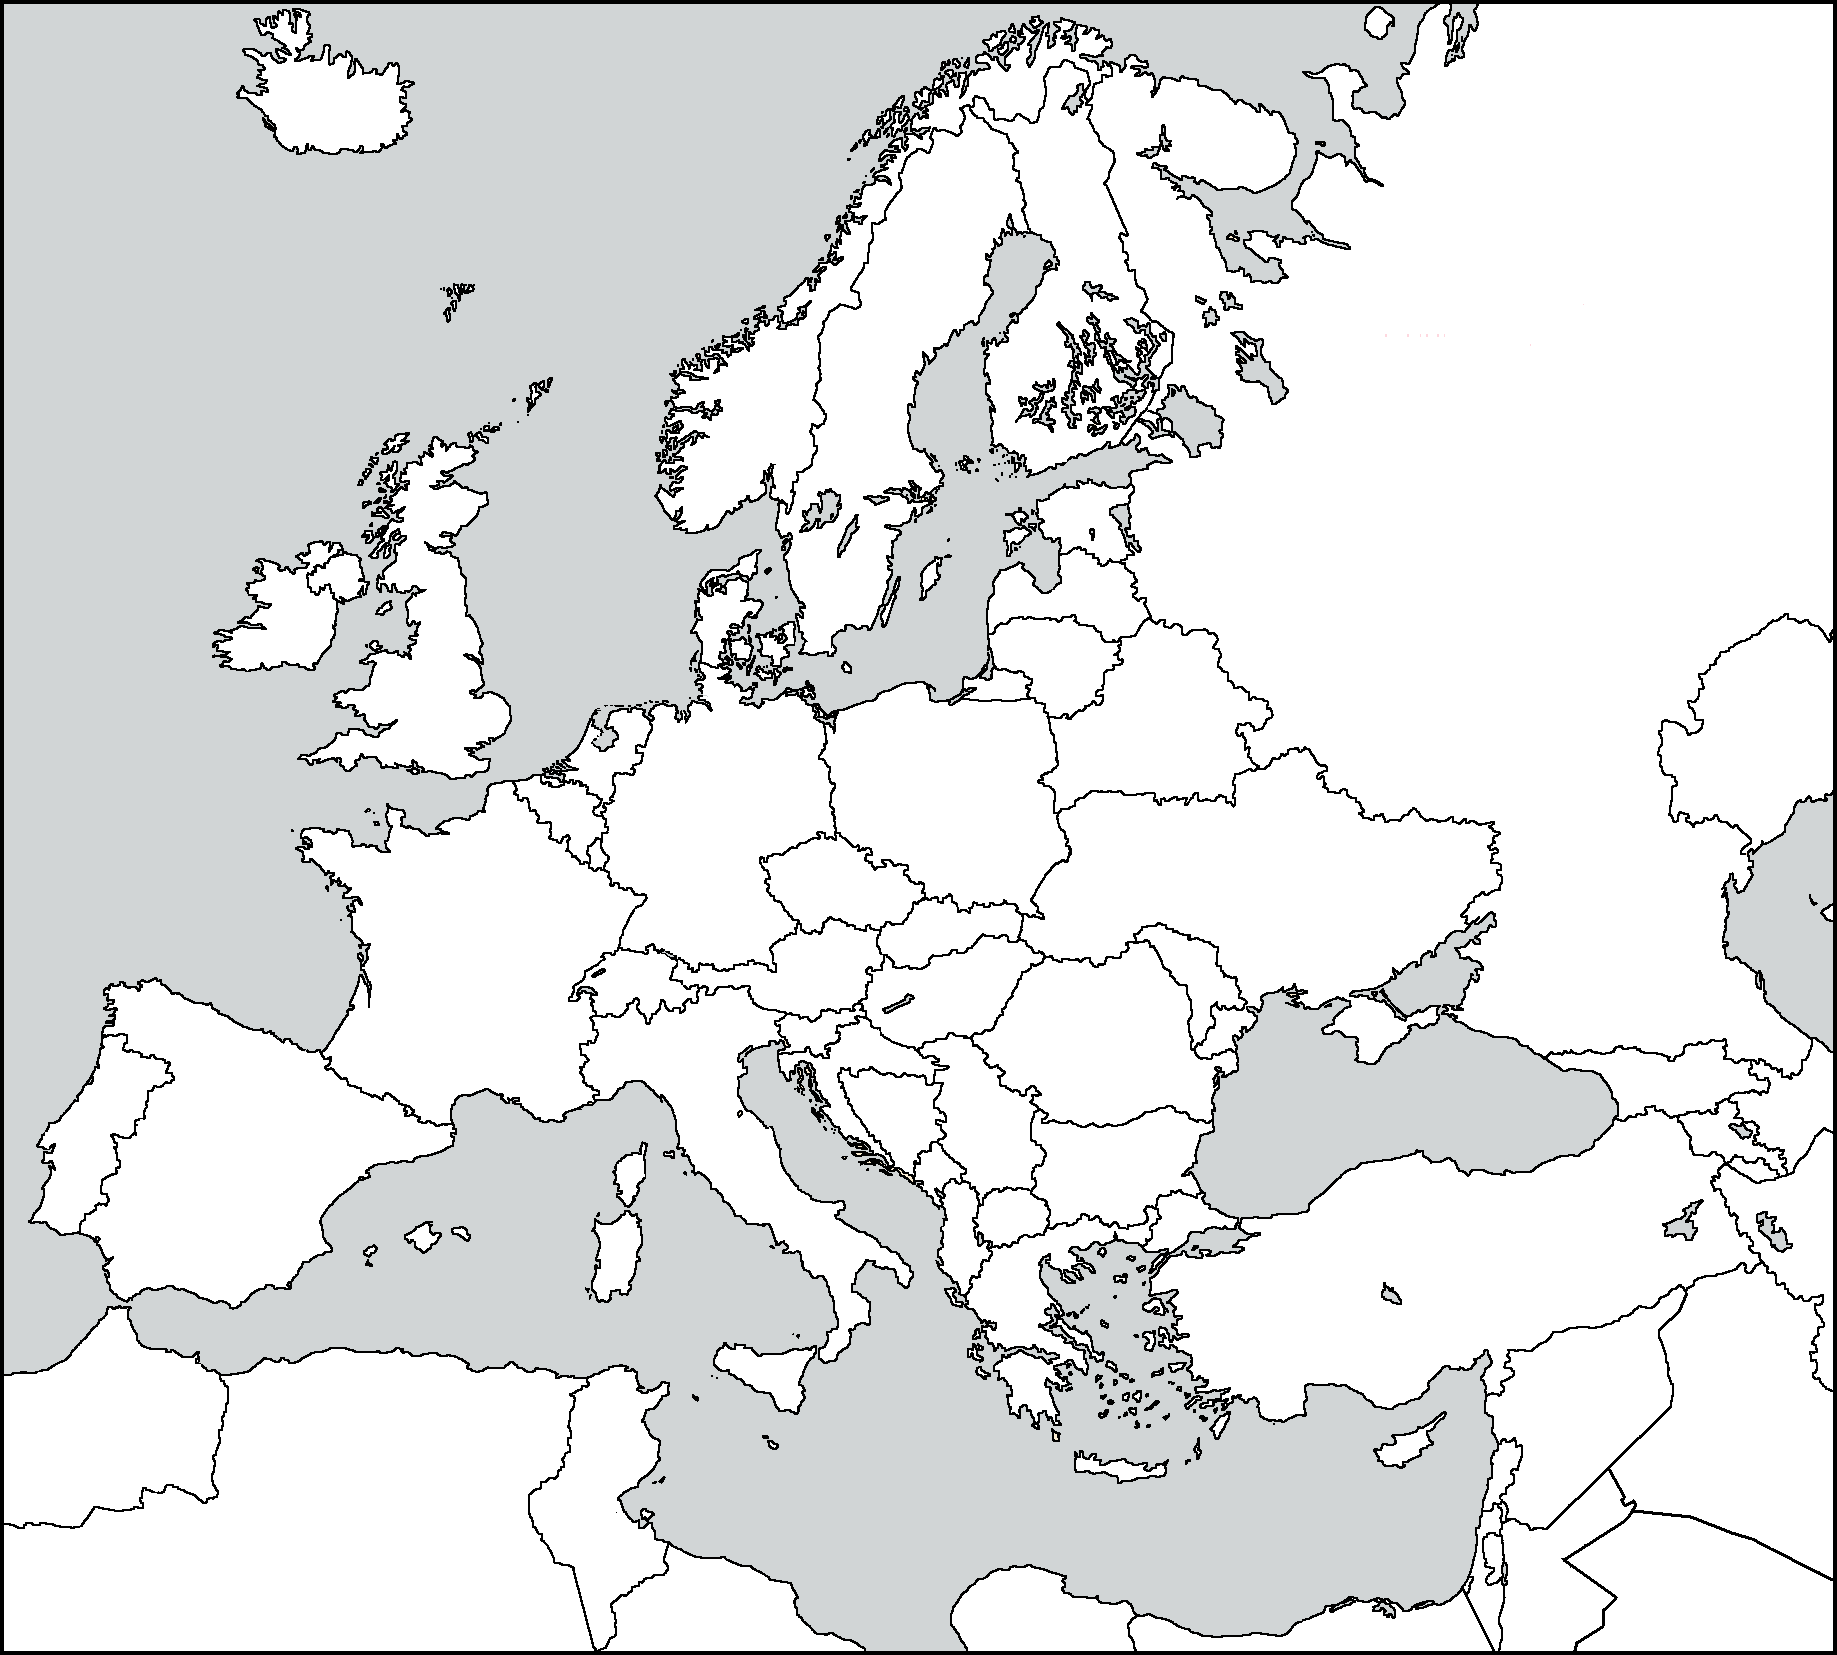 Kosovo Map In World. Blank Europe map without Kosovo and Liechtenstein png Image